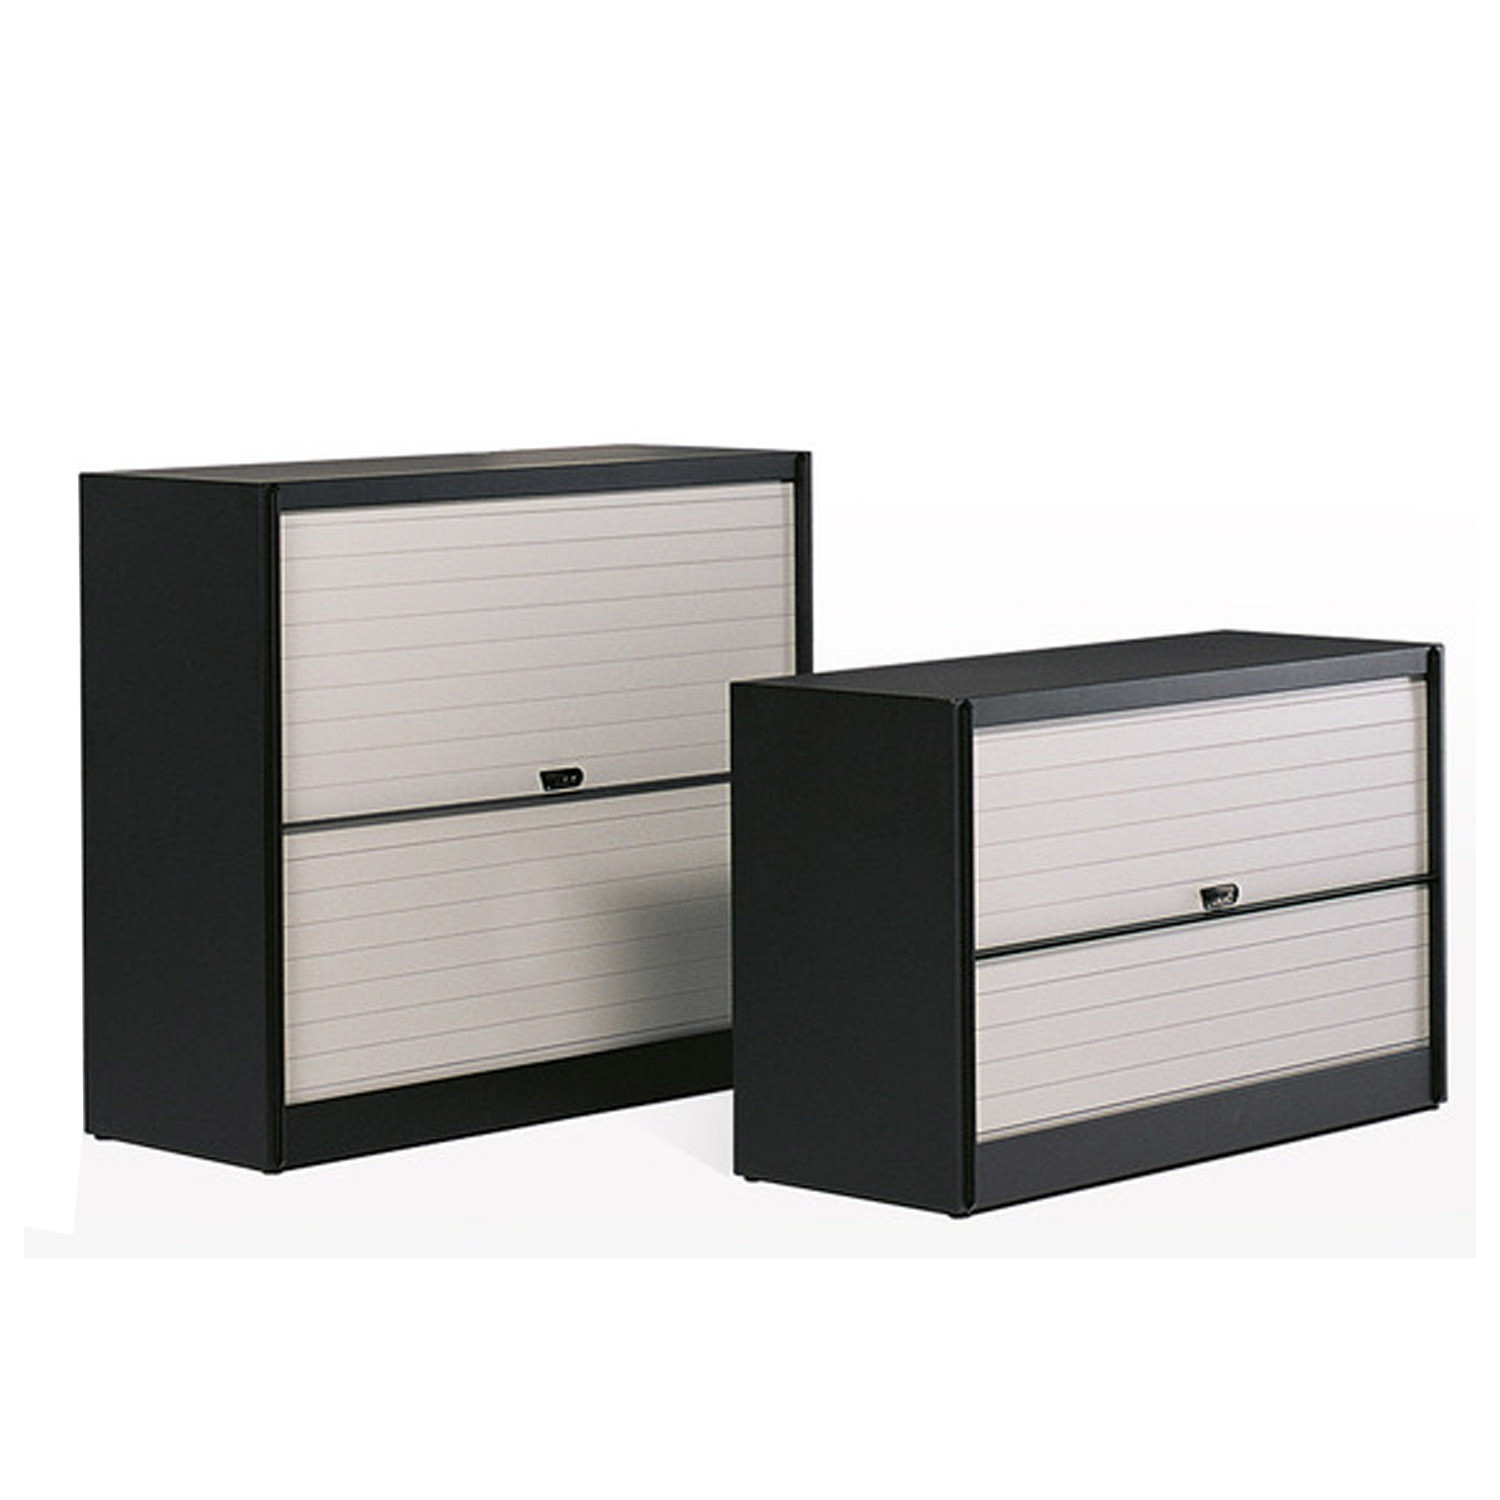 Bulo KRS Storage Cabinets